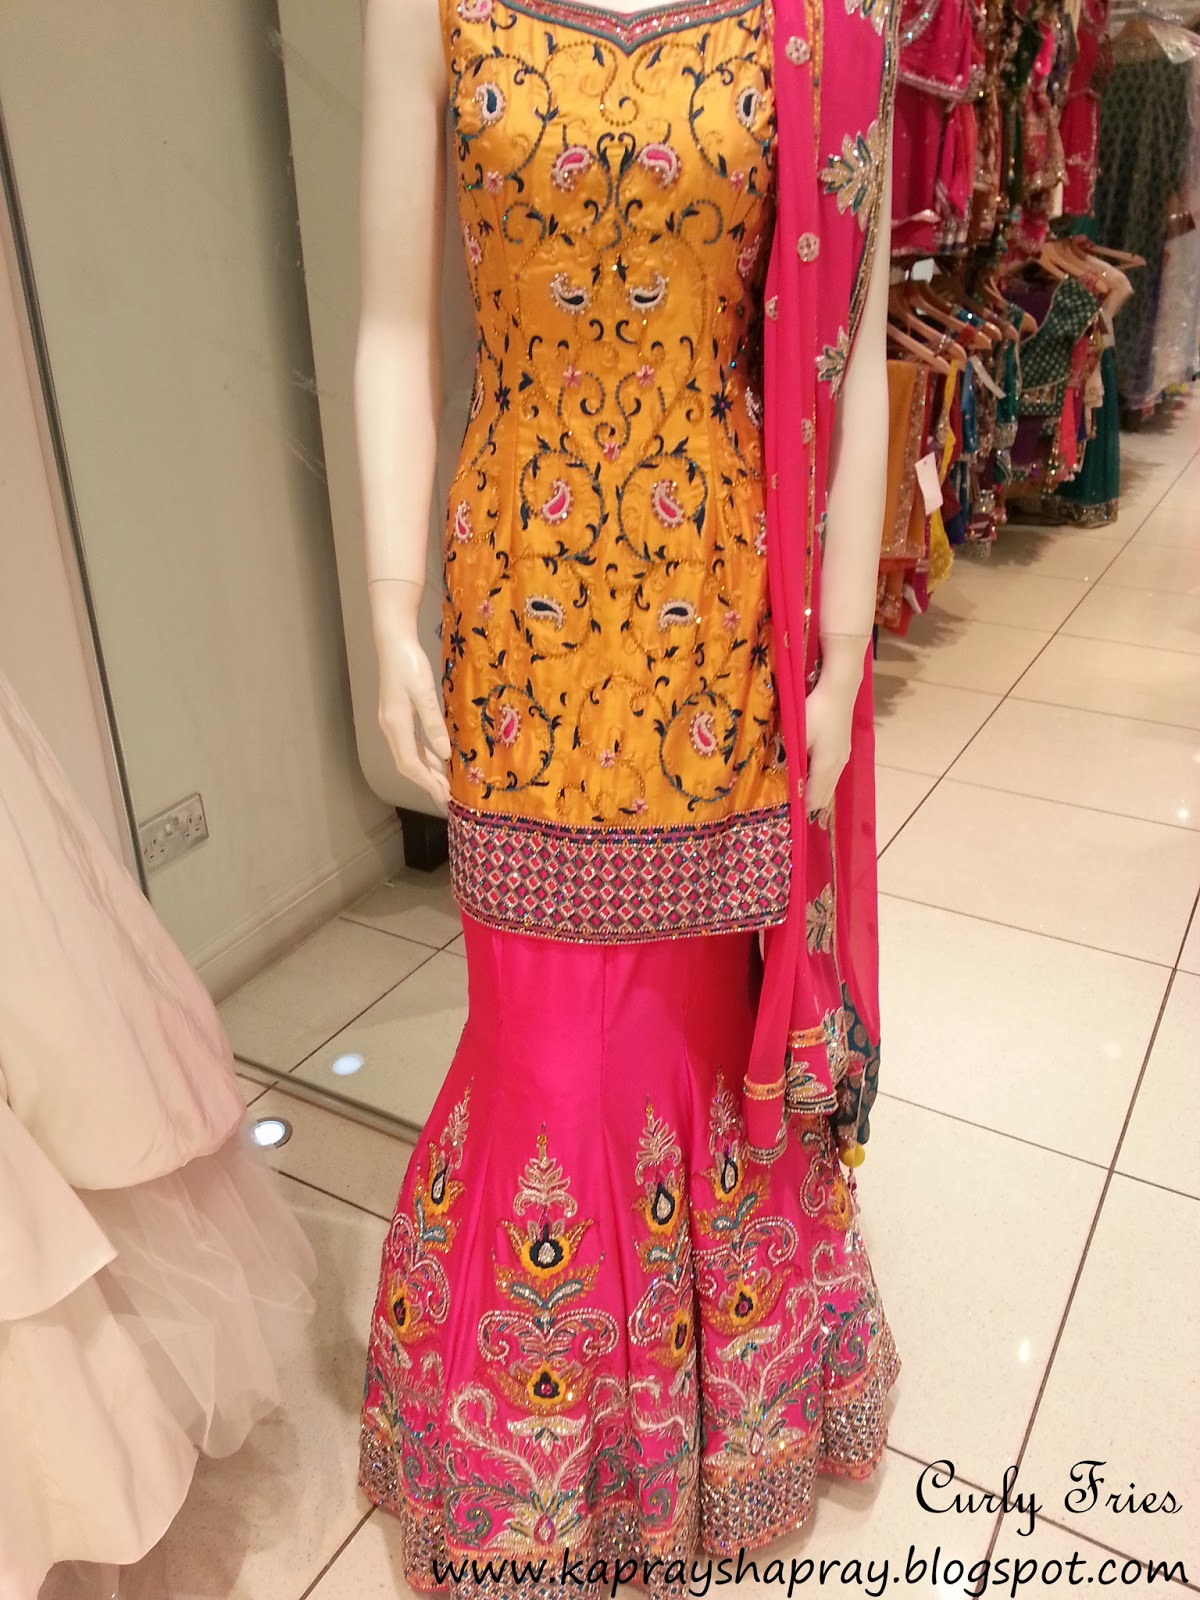 Curly Fries HIGH STREET DESIGNS A Yellow and Pink Mehndi outfit